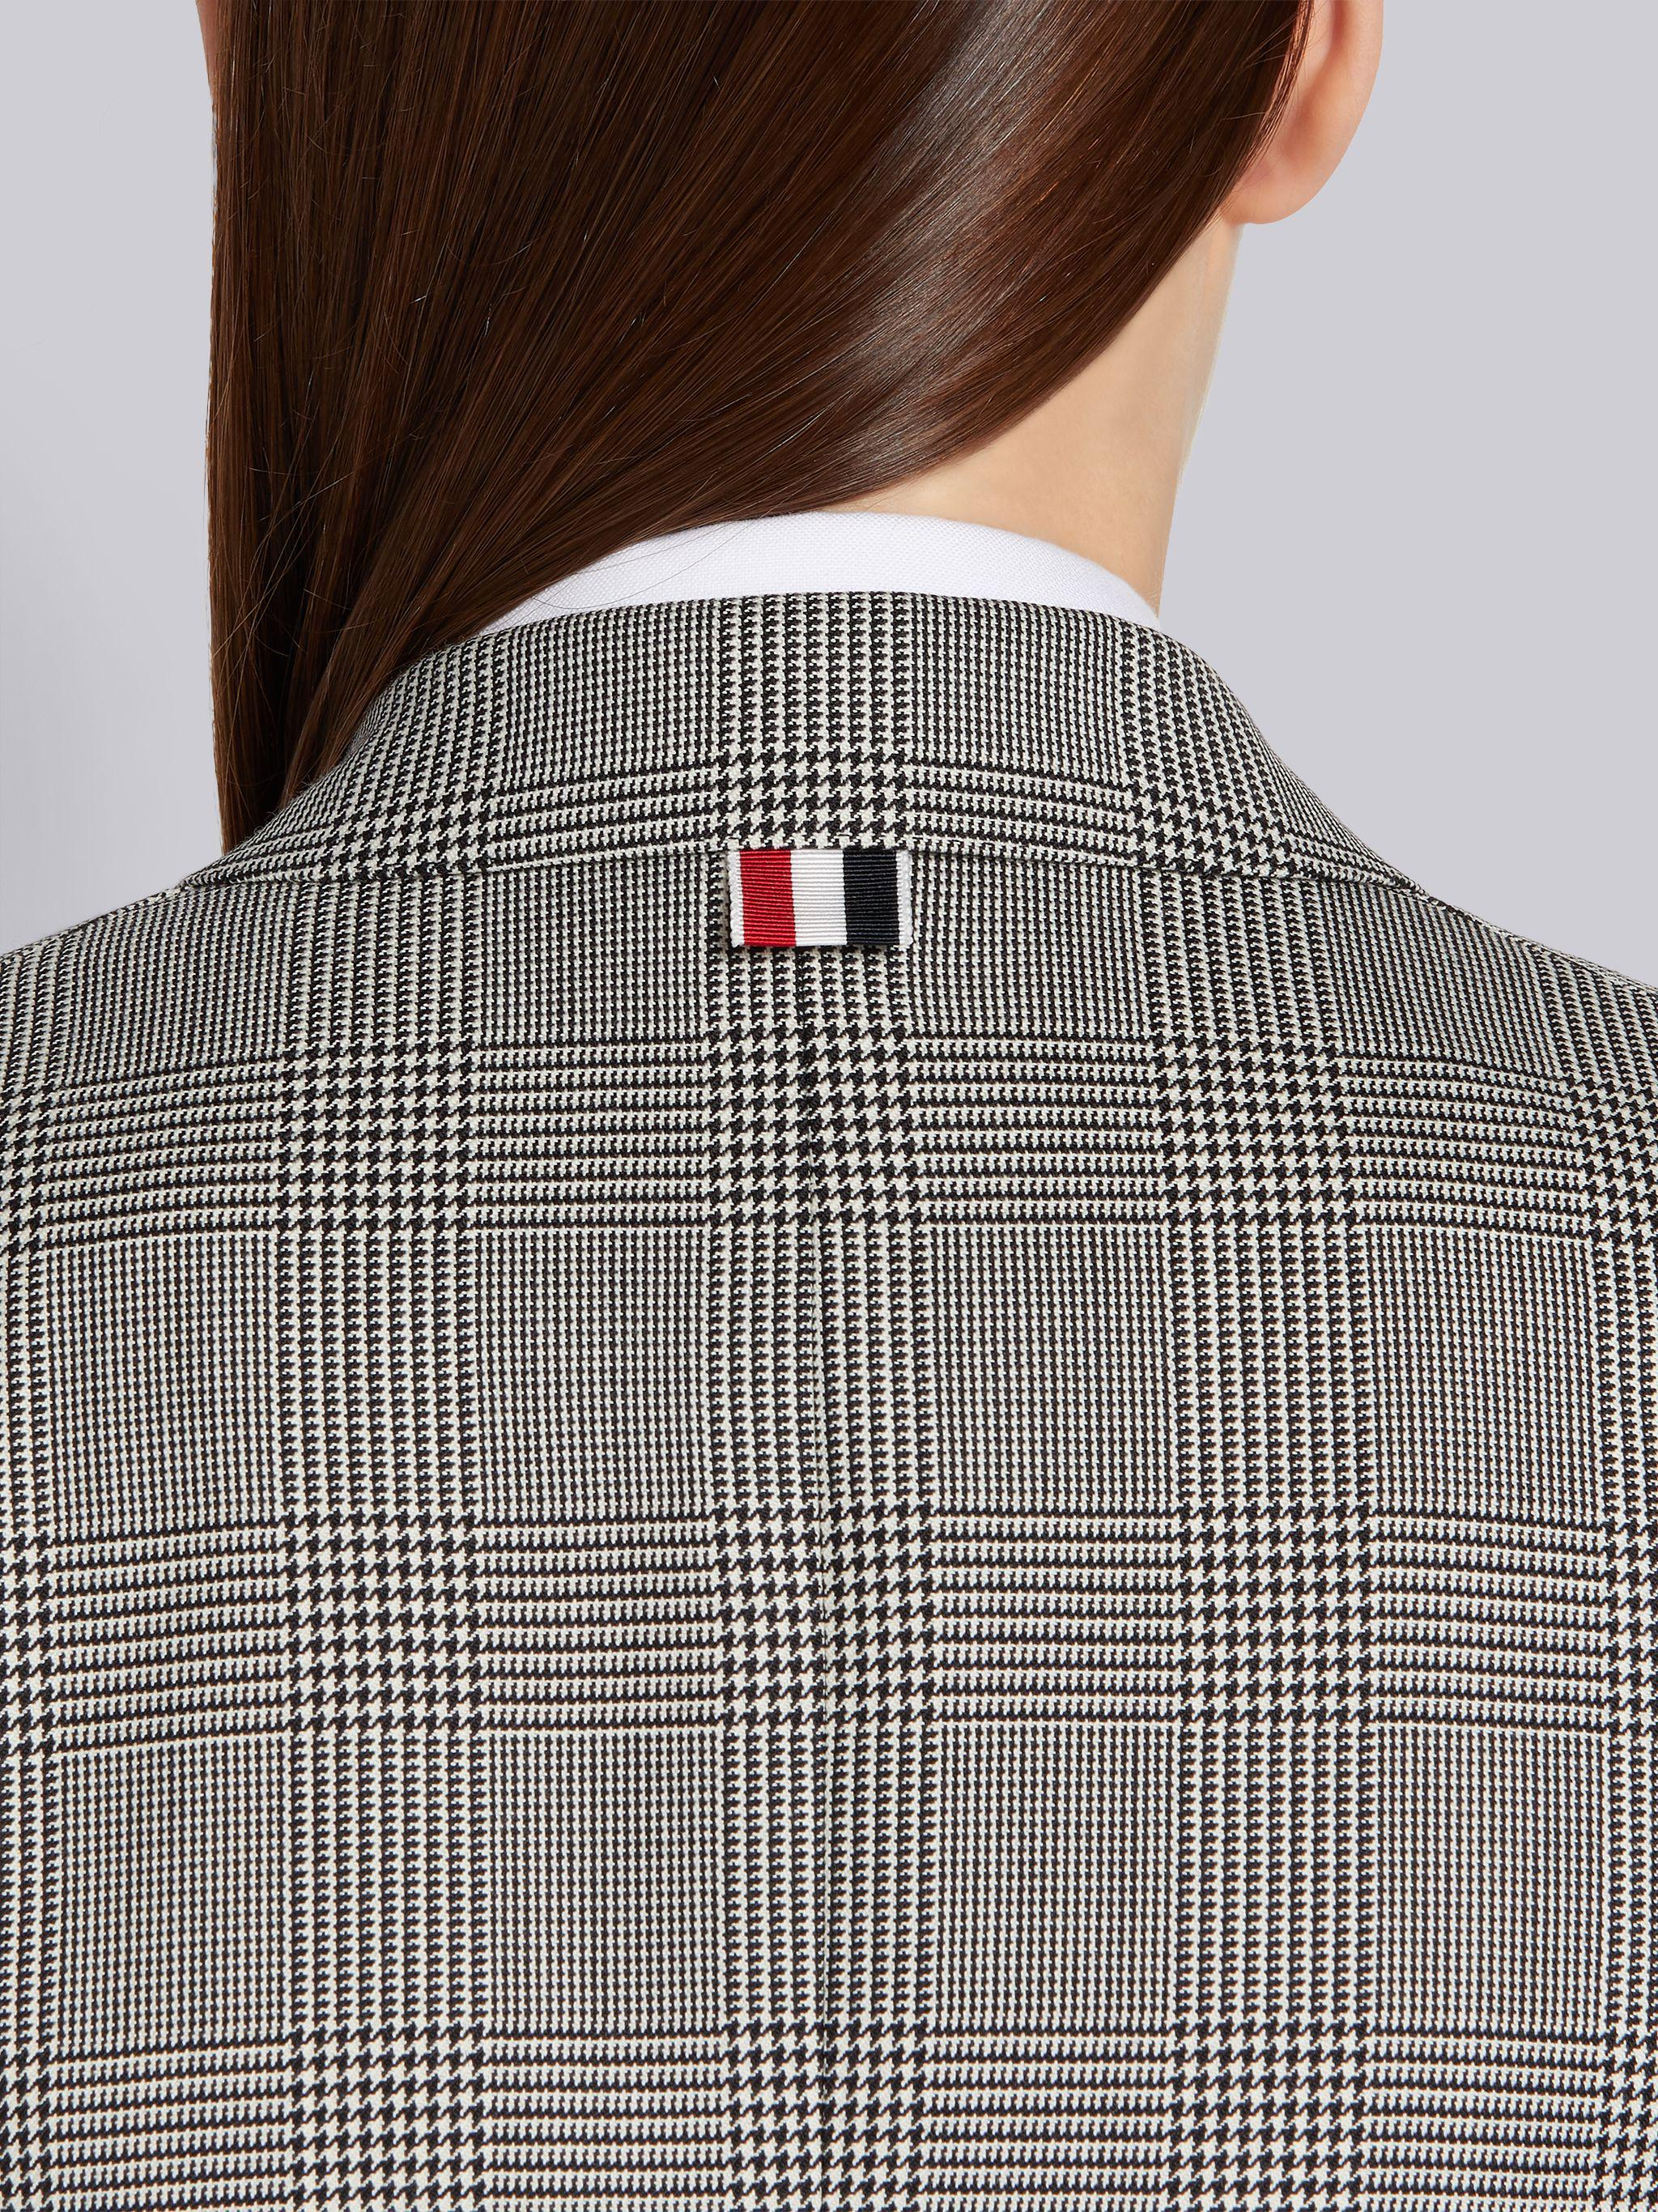 Black and White Wool Houndstooth High Armhole 4-Bar Jacket 4